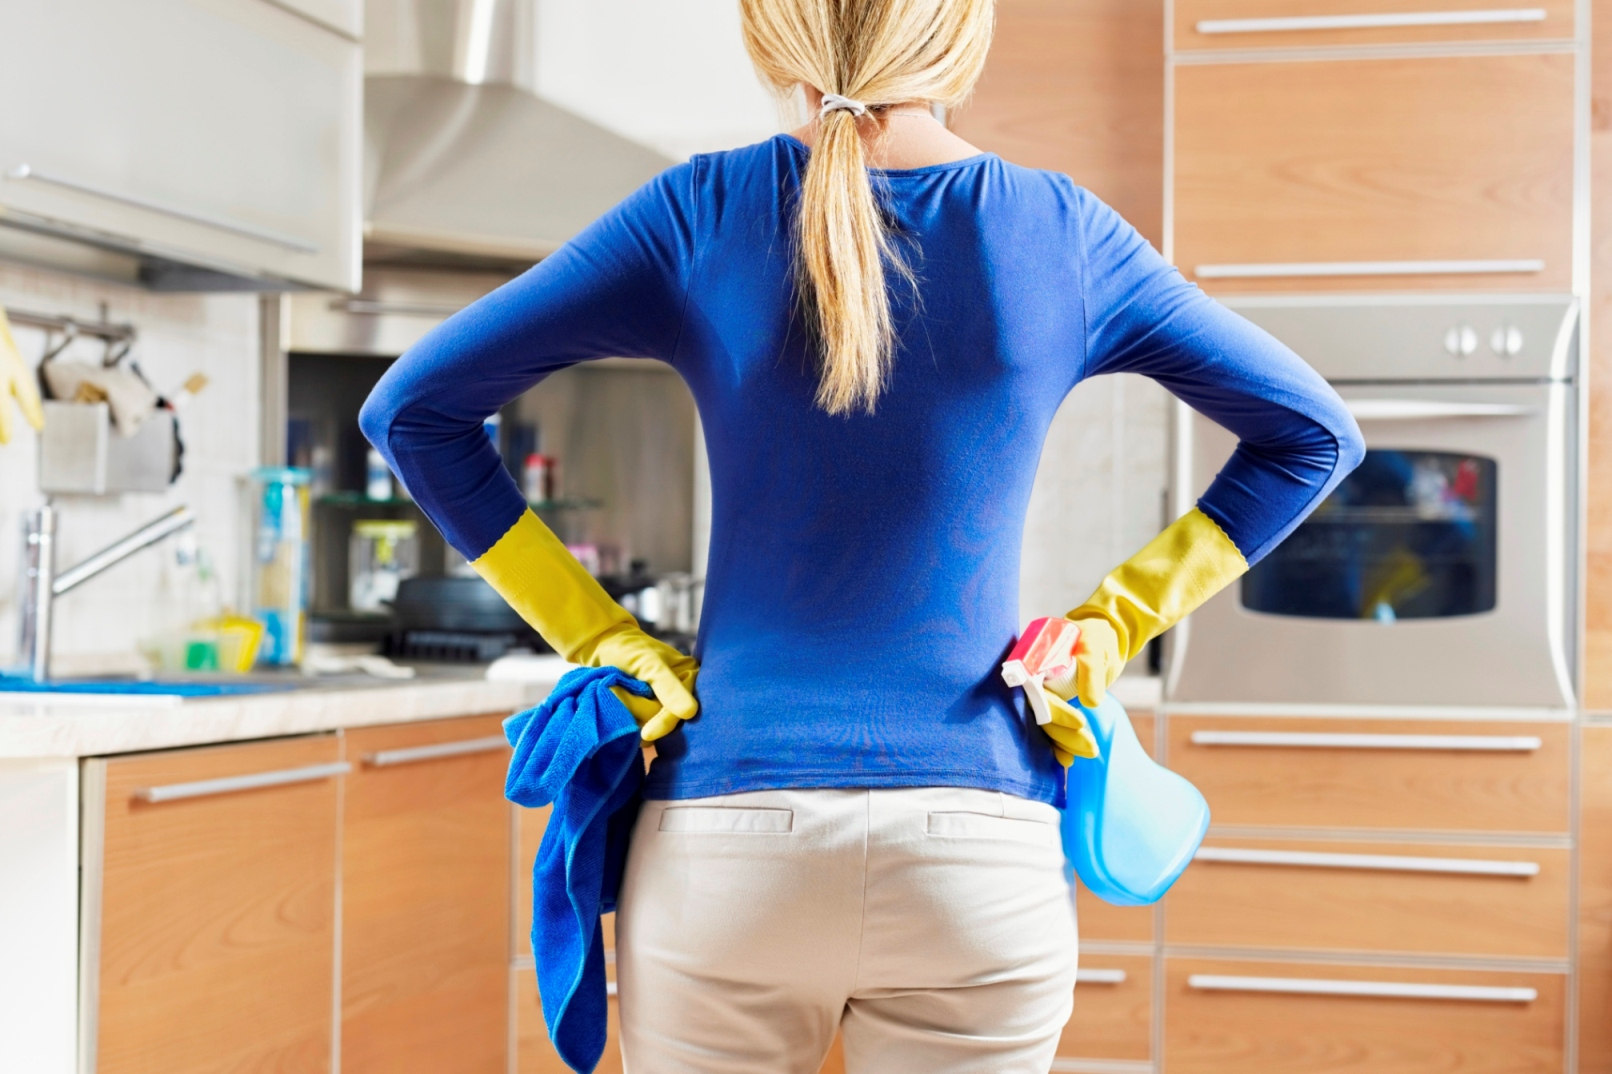 Emejing Chicago Apartment Cleaning Pictures - Home Ideas Design ...